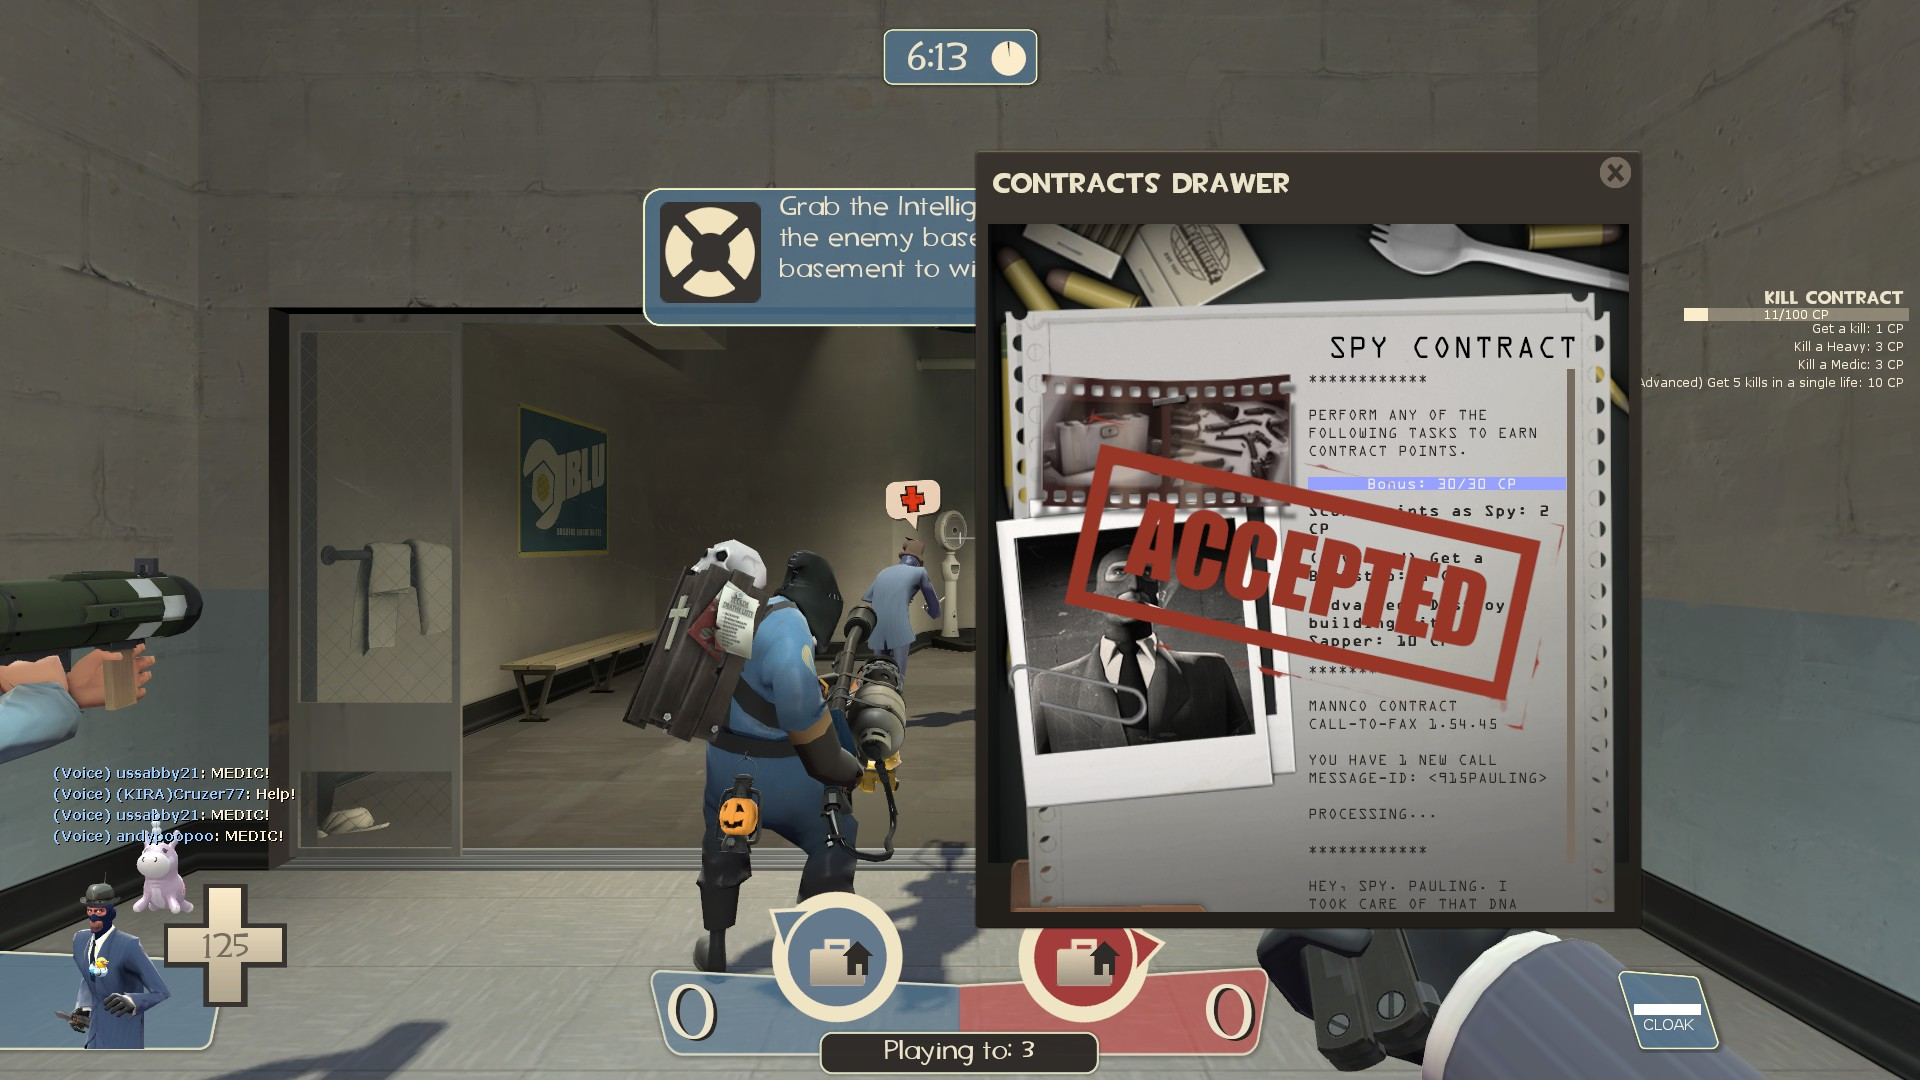 tf2 contract server